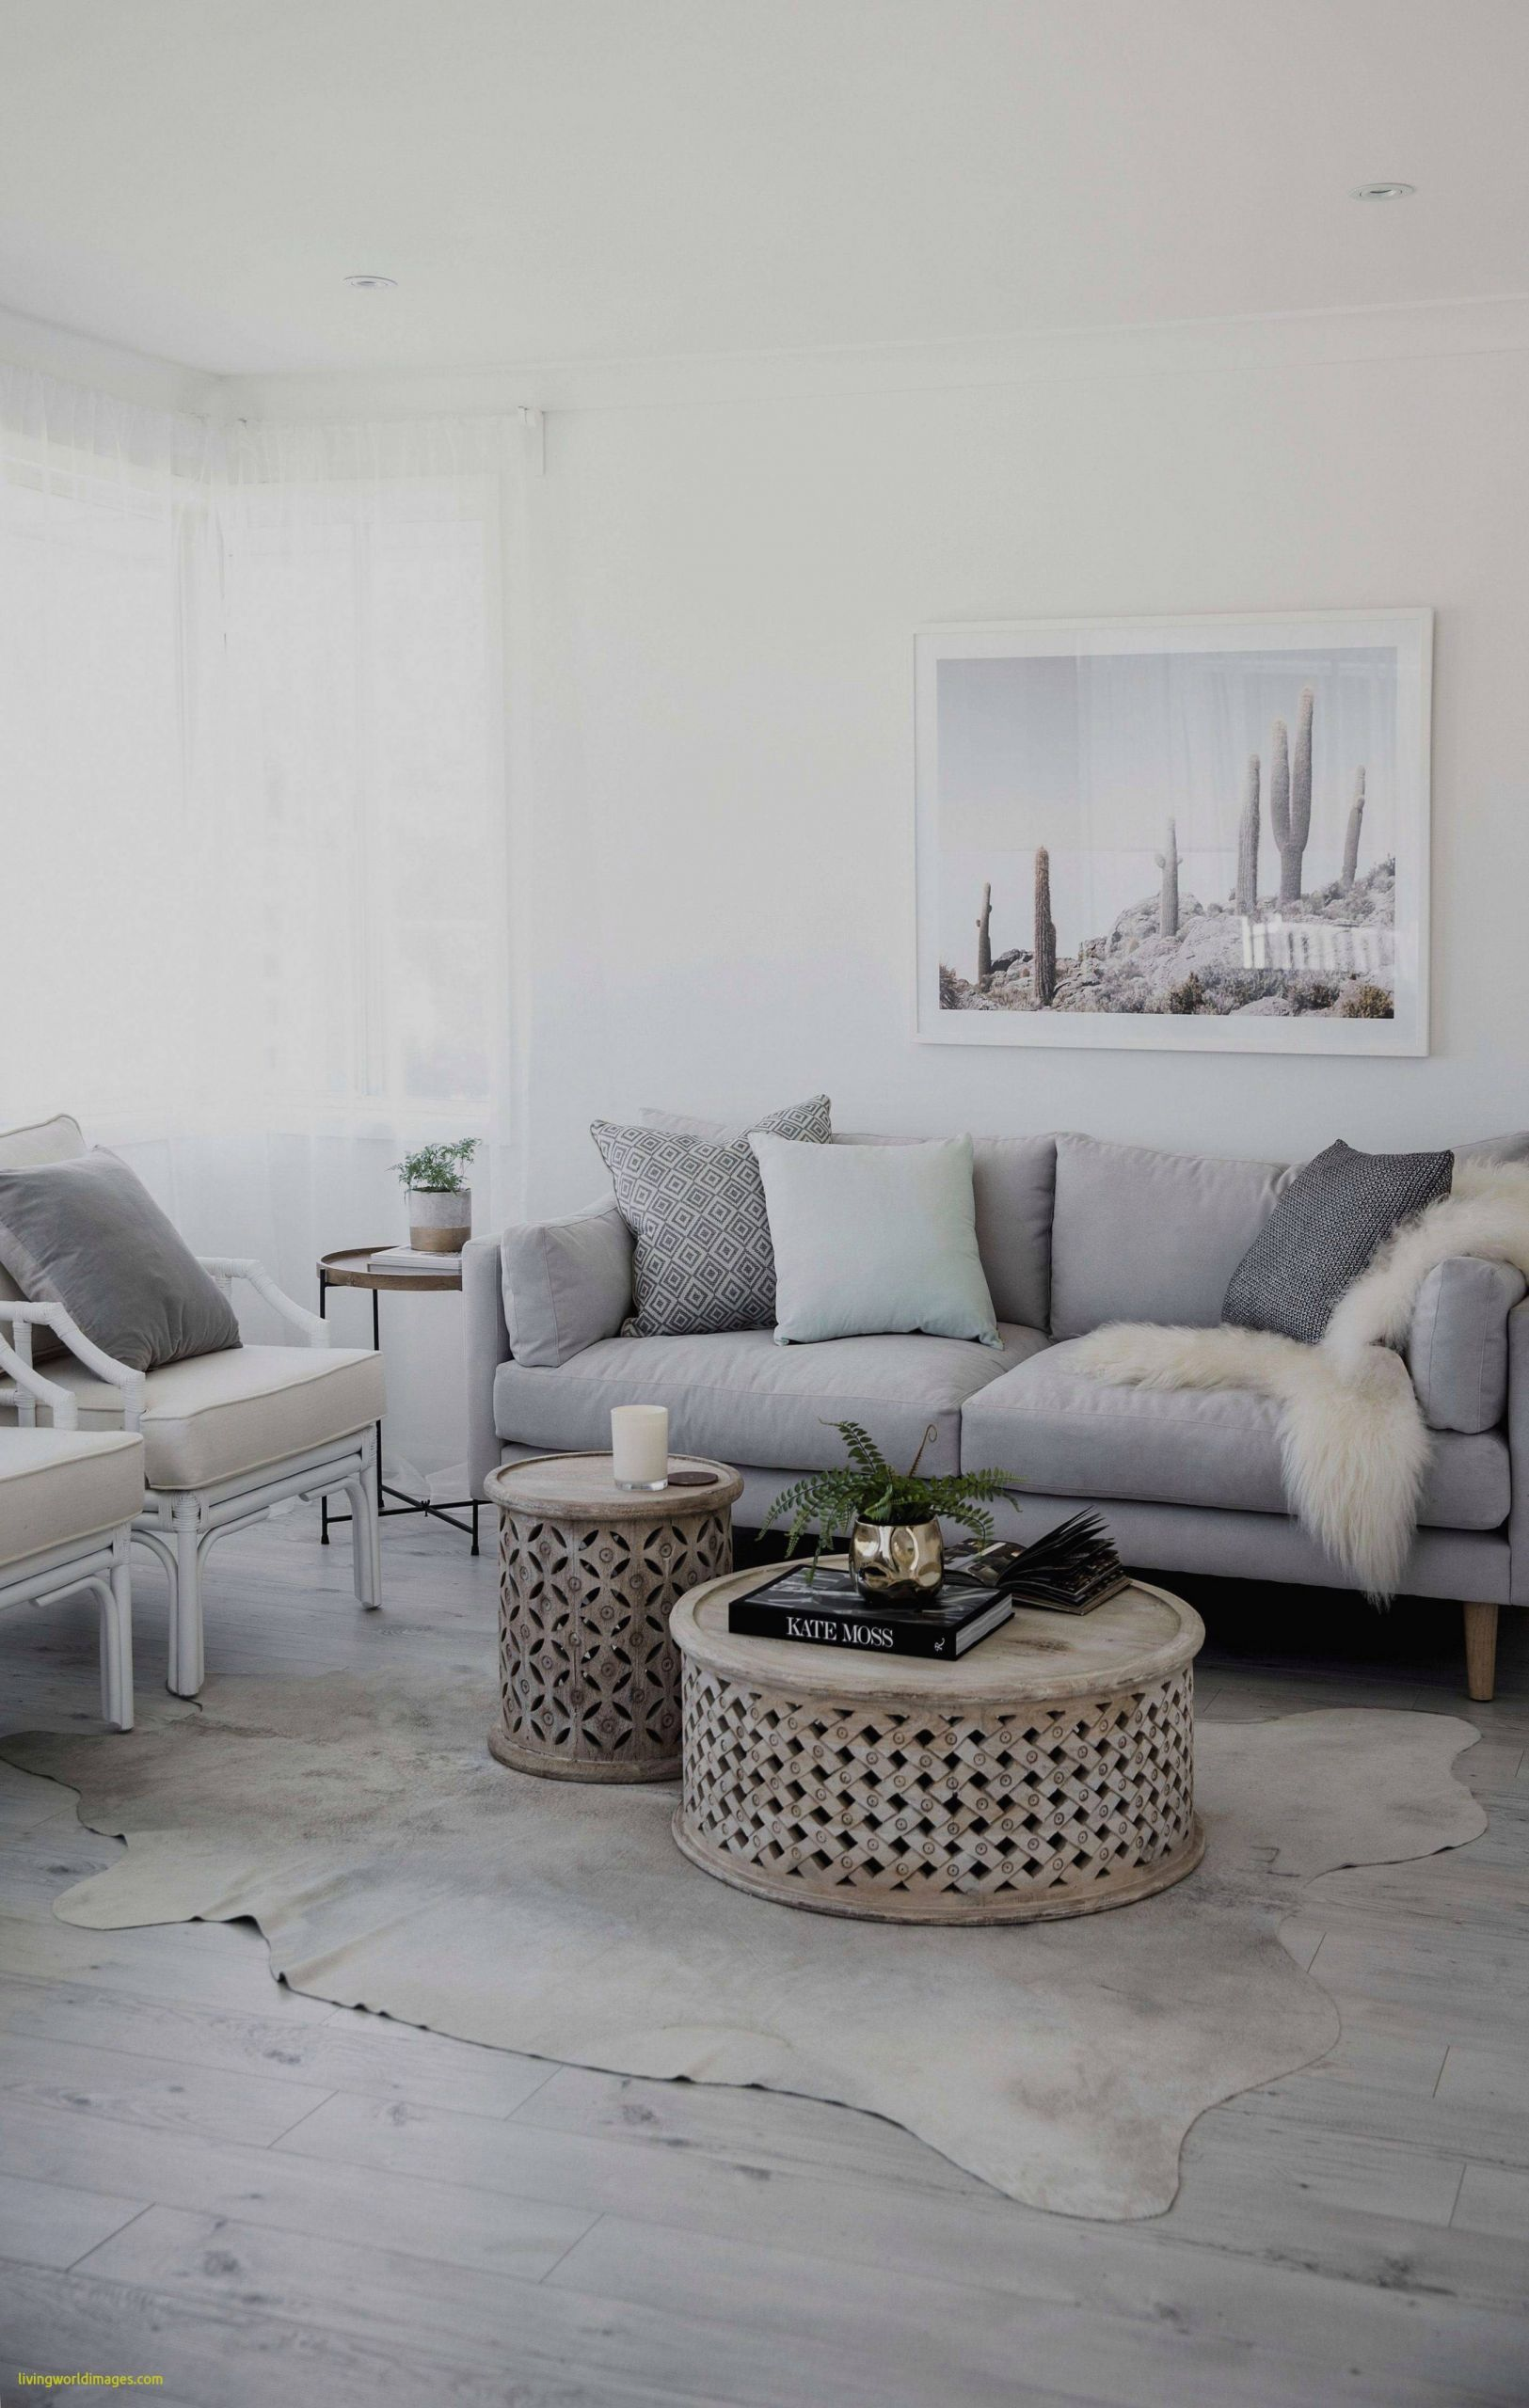 stock photos home interiors gallery interior design desk fresh apartment living room designs apartment couch 0d archives home stock